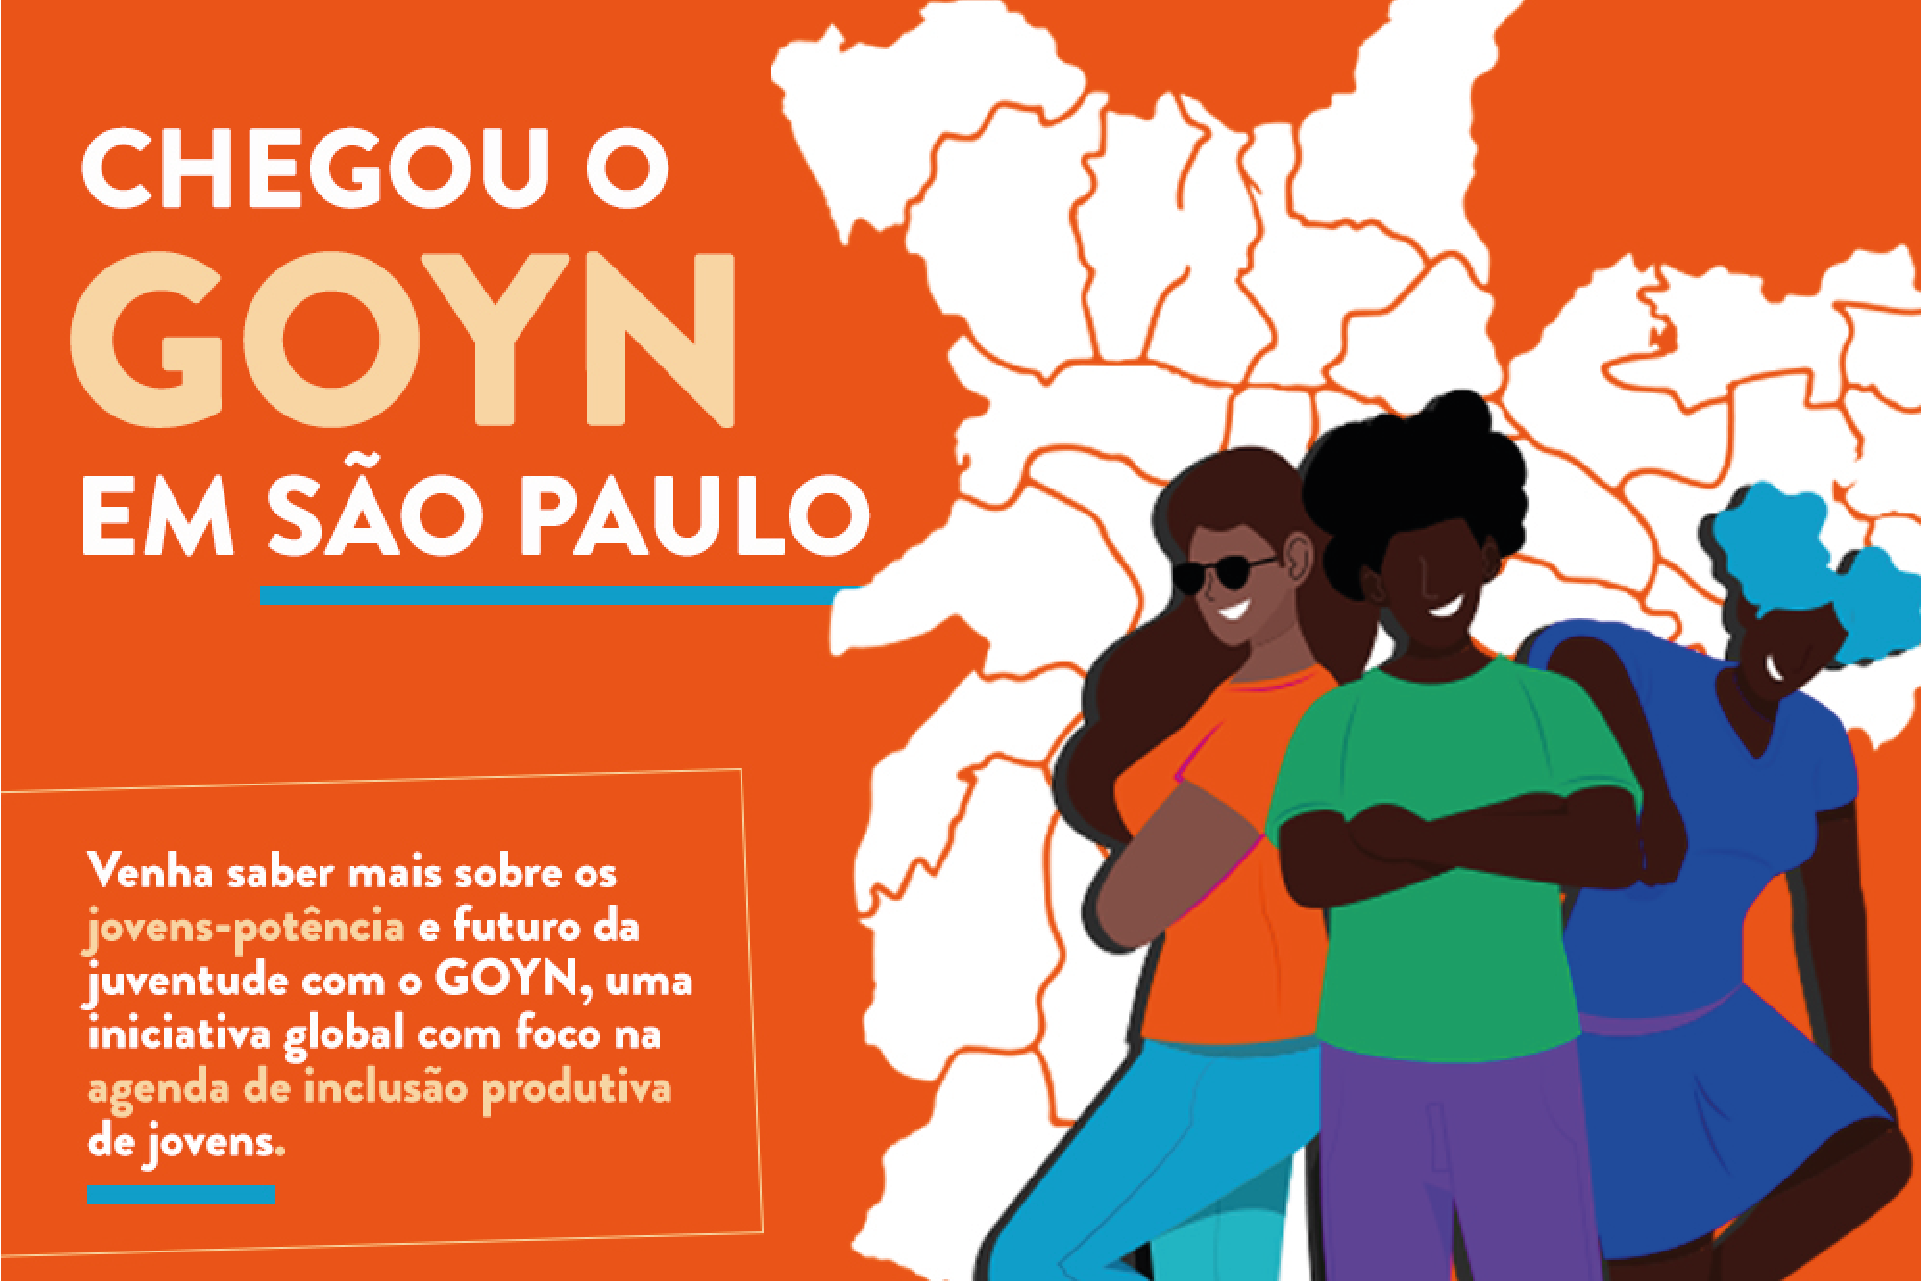 GOYN SÃO PAULO PROGRAM PRESENTS SOLUTIONS FOR EMPLOYABILITY OF PERIPHERAL YOUTH IN FREE AND ONLINE EVENT